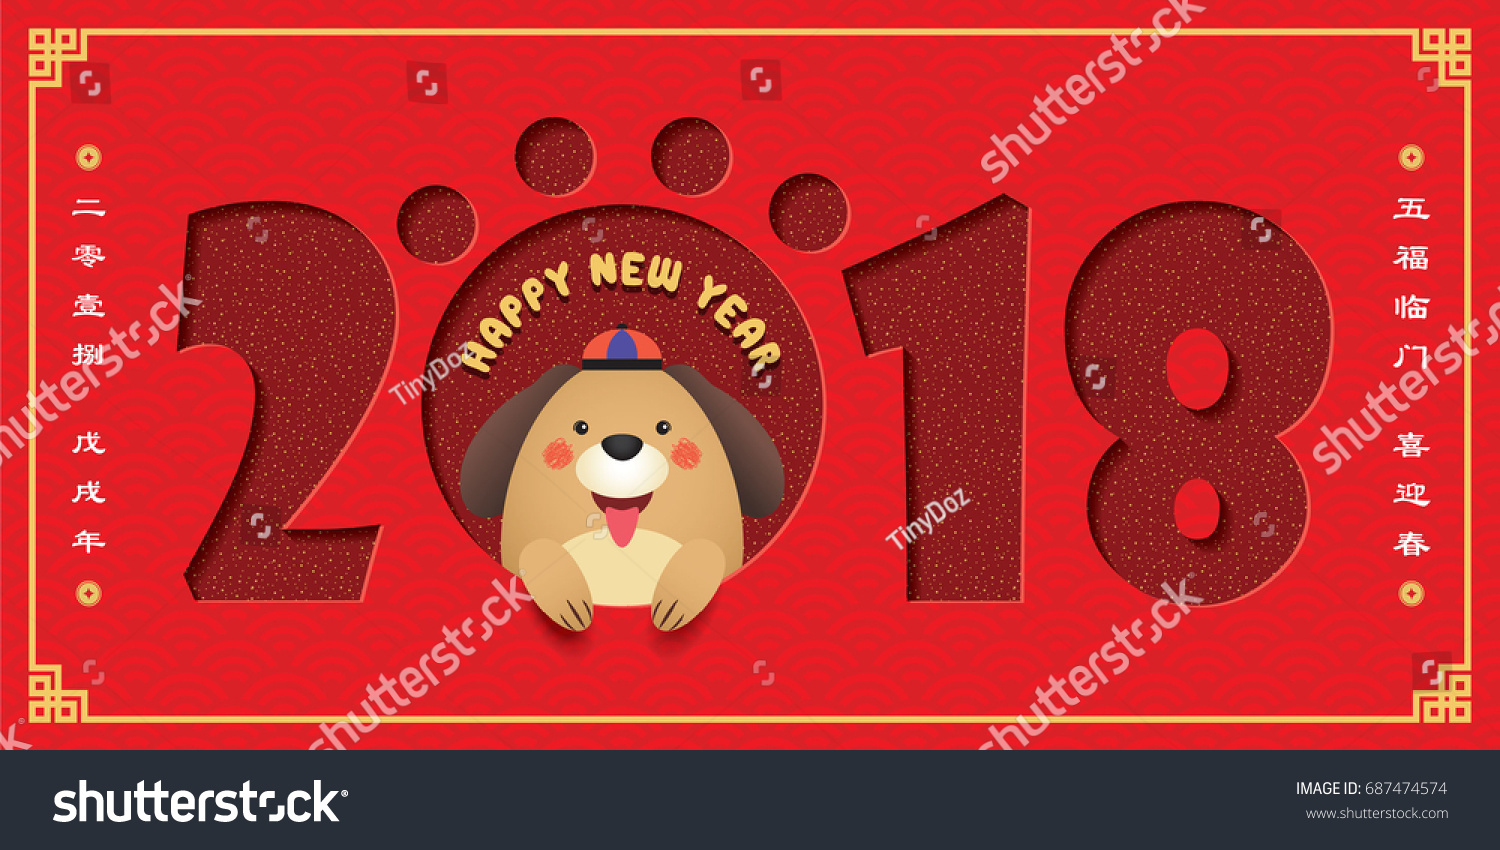 2018 chinese new year banner template design chinese vintage design element caption l